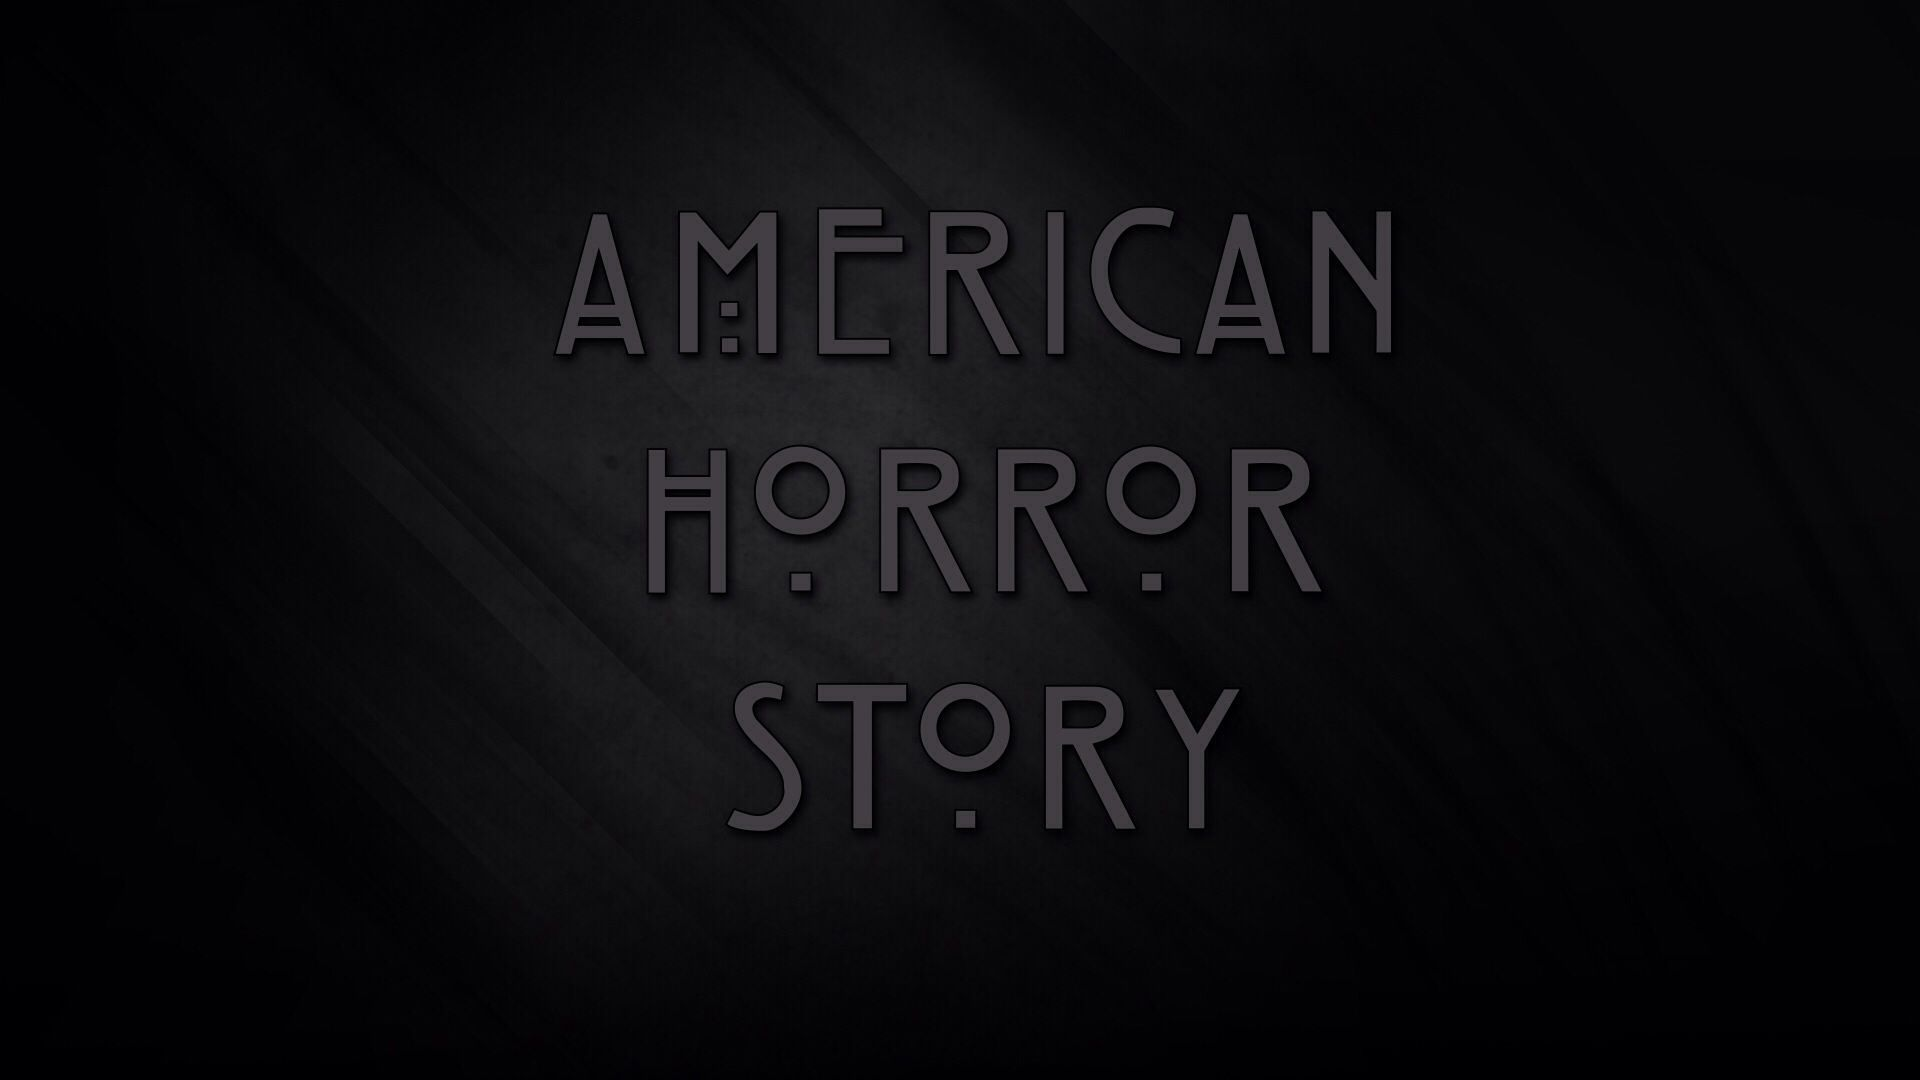 American Horror Story HD Wallpapers 20+